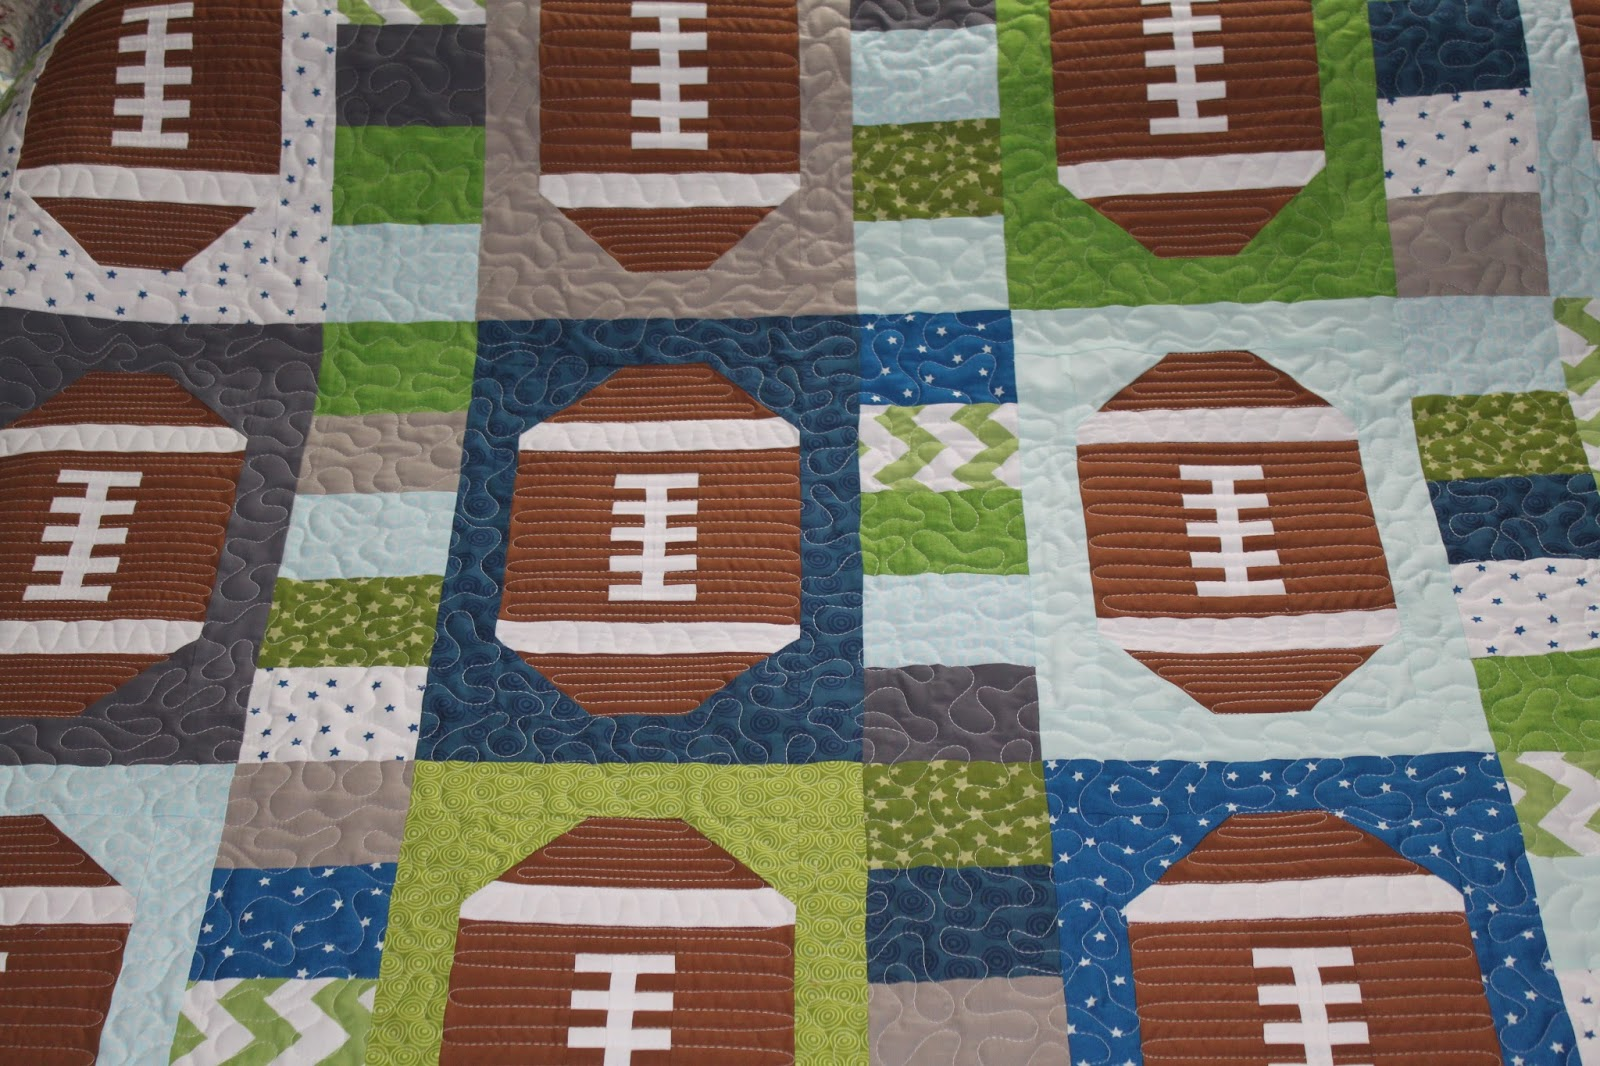 Quilt Patterns For Sports : Baby quilts on Pinterest Sports Quilts, Quilt Patterns and Kid Quilts